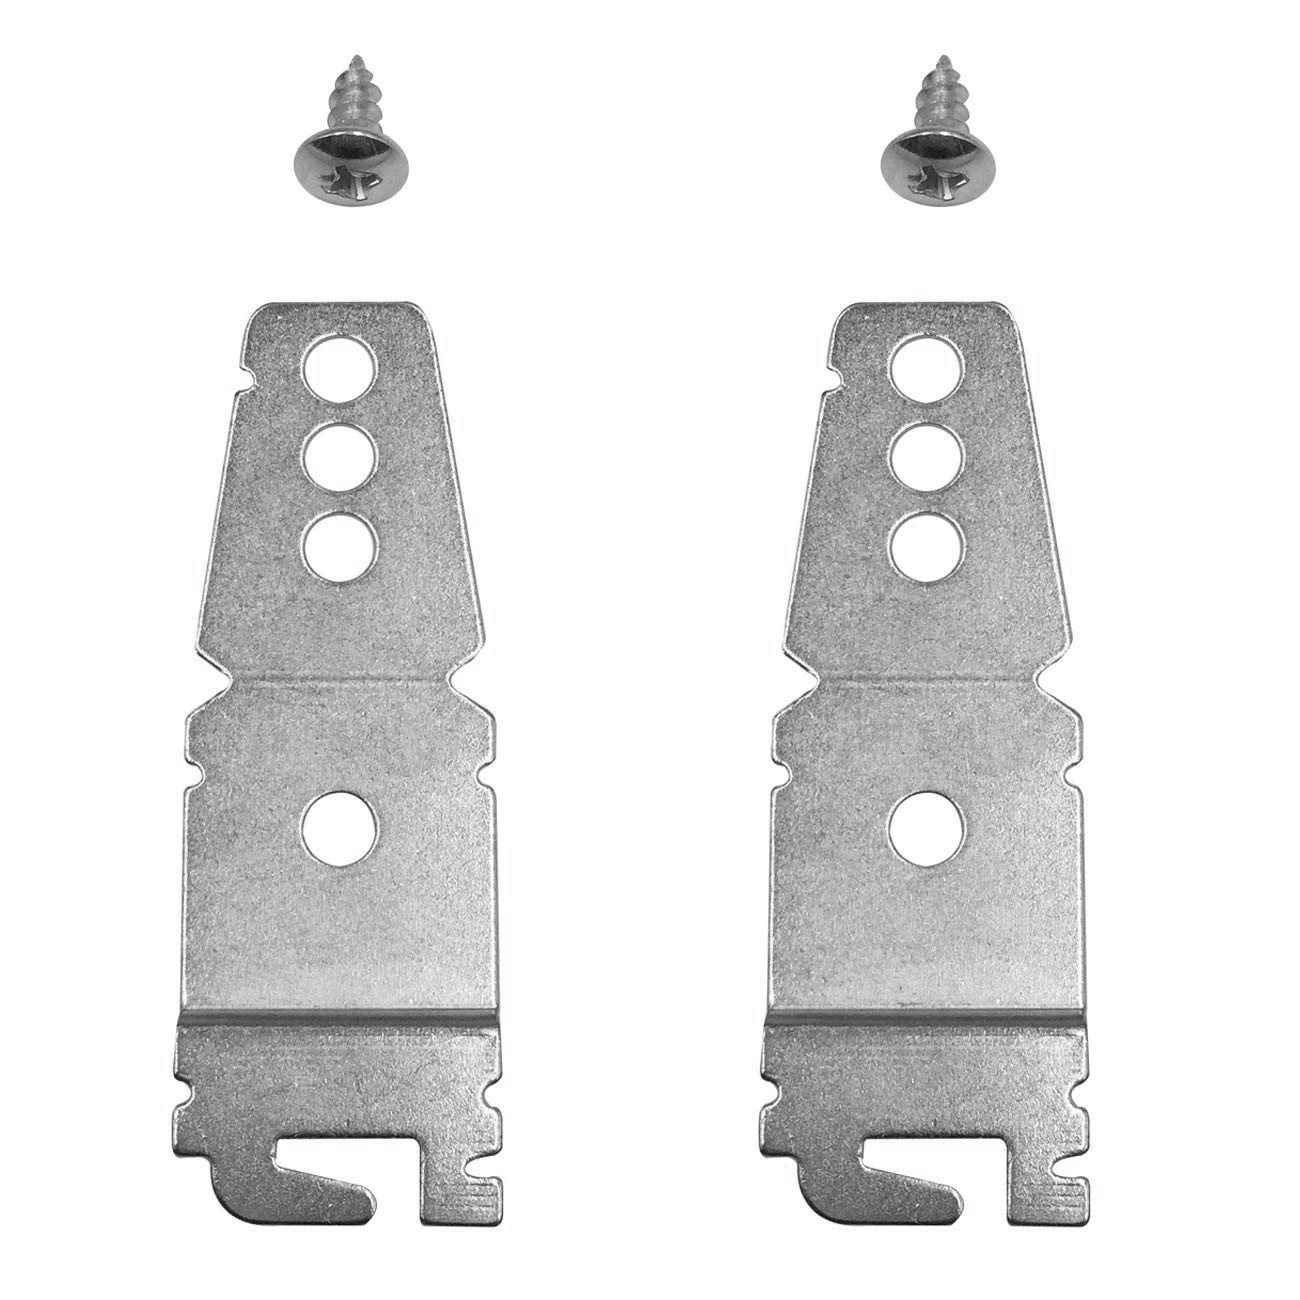 2-Pack Dishwasher Mounting Bracket w/screws | Universal Brackets for Kenmore Kitchenaid Frigidaire, Maytag, LG, Bosch Dishwashers | Under-Counter Mounting Bracket | Compare to parts 8269145/WP82691